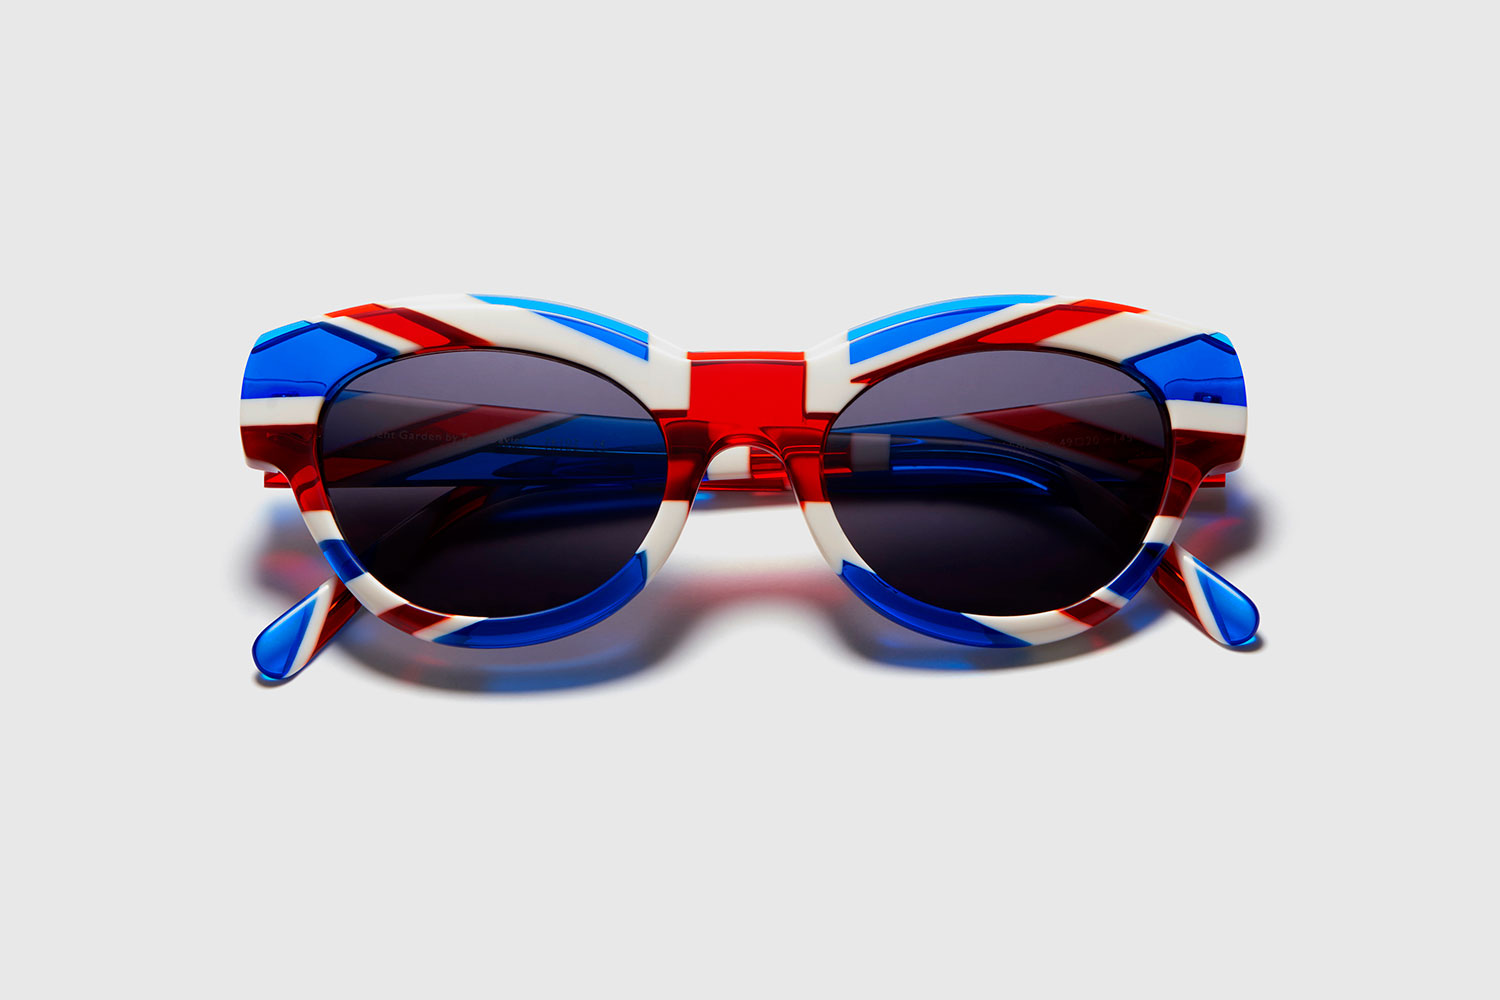 Union Jack sunglasses designed by British eyewear designer Tom Davies